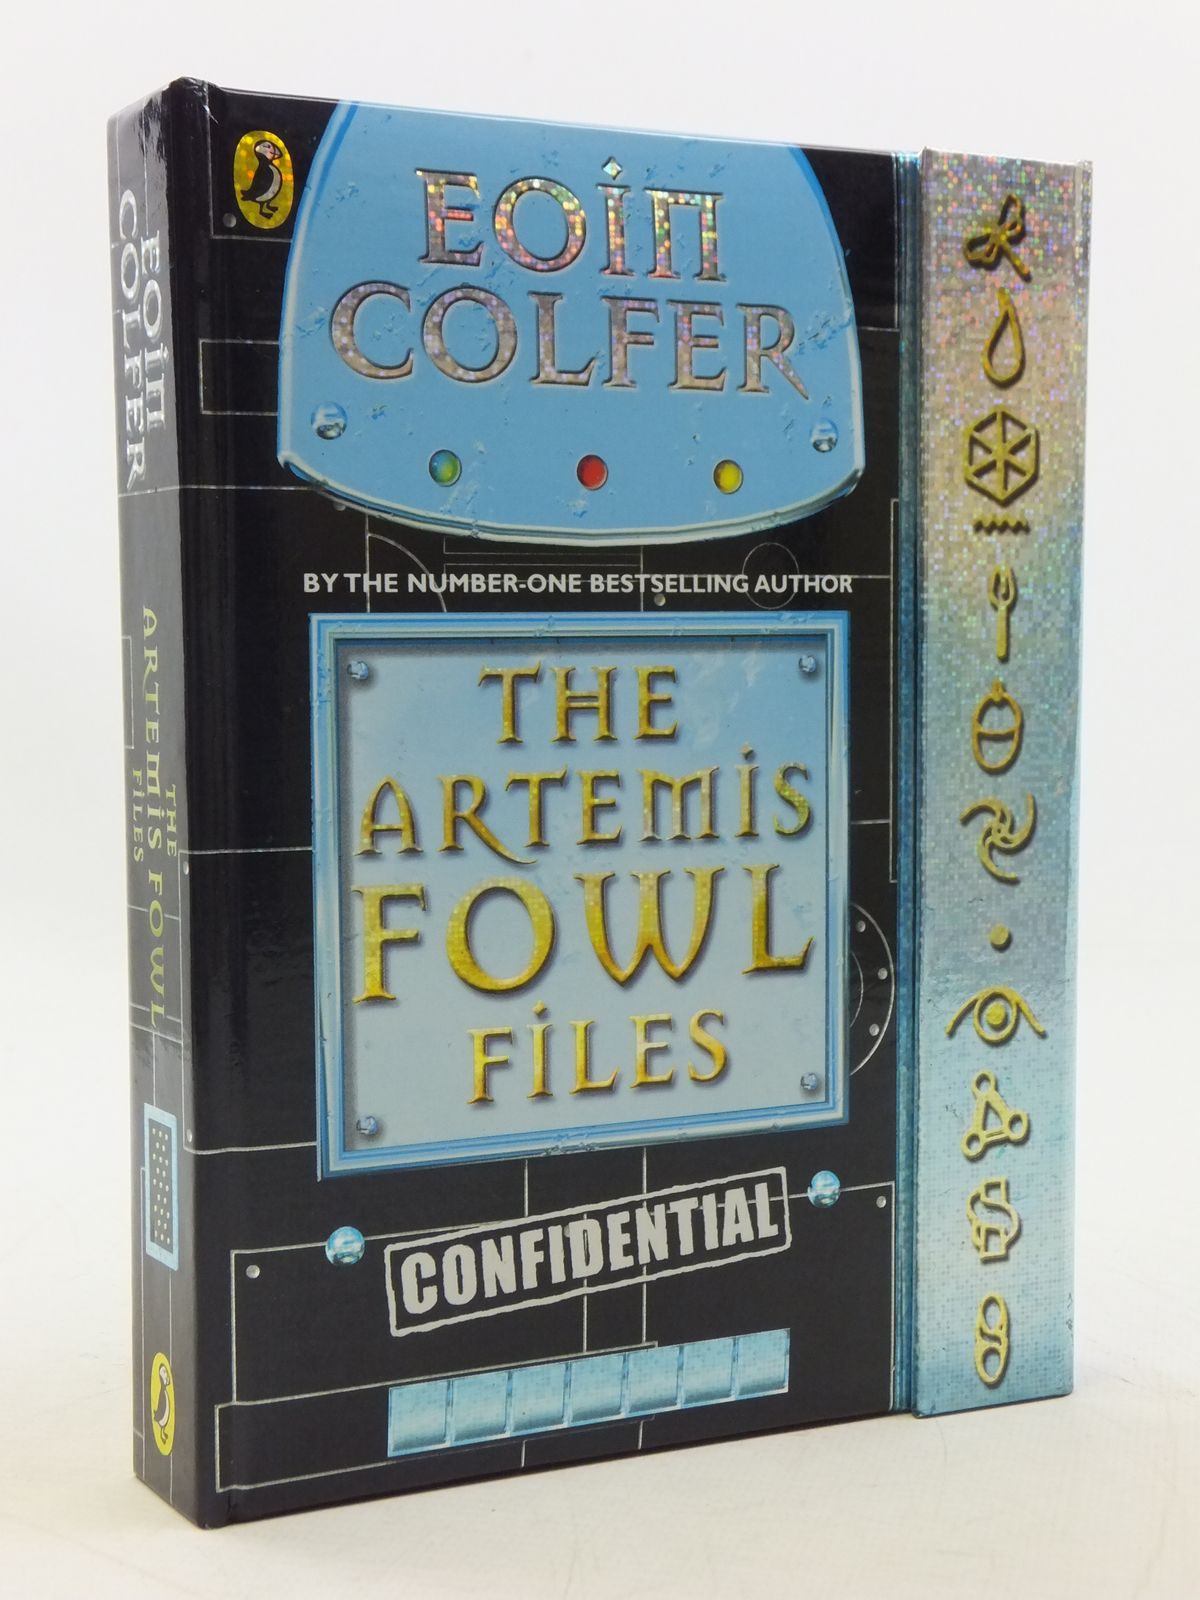 Photo Of The Artemis Fowl Files Written By Colfer, Eoin Illustrated By  Fleetwood, Tony